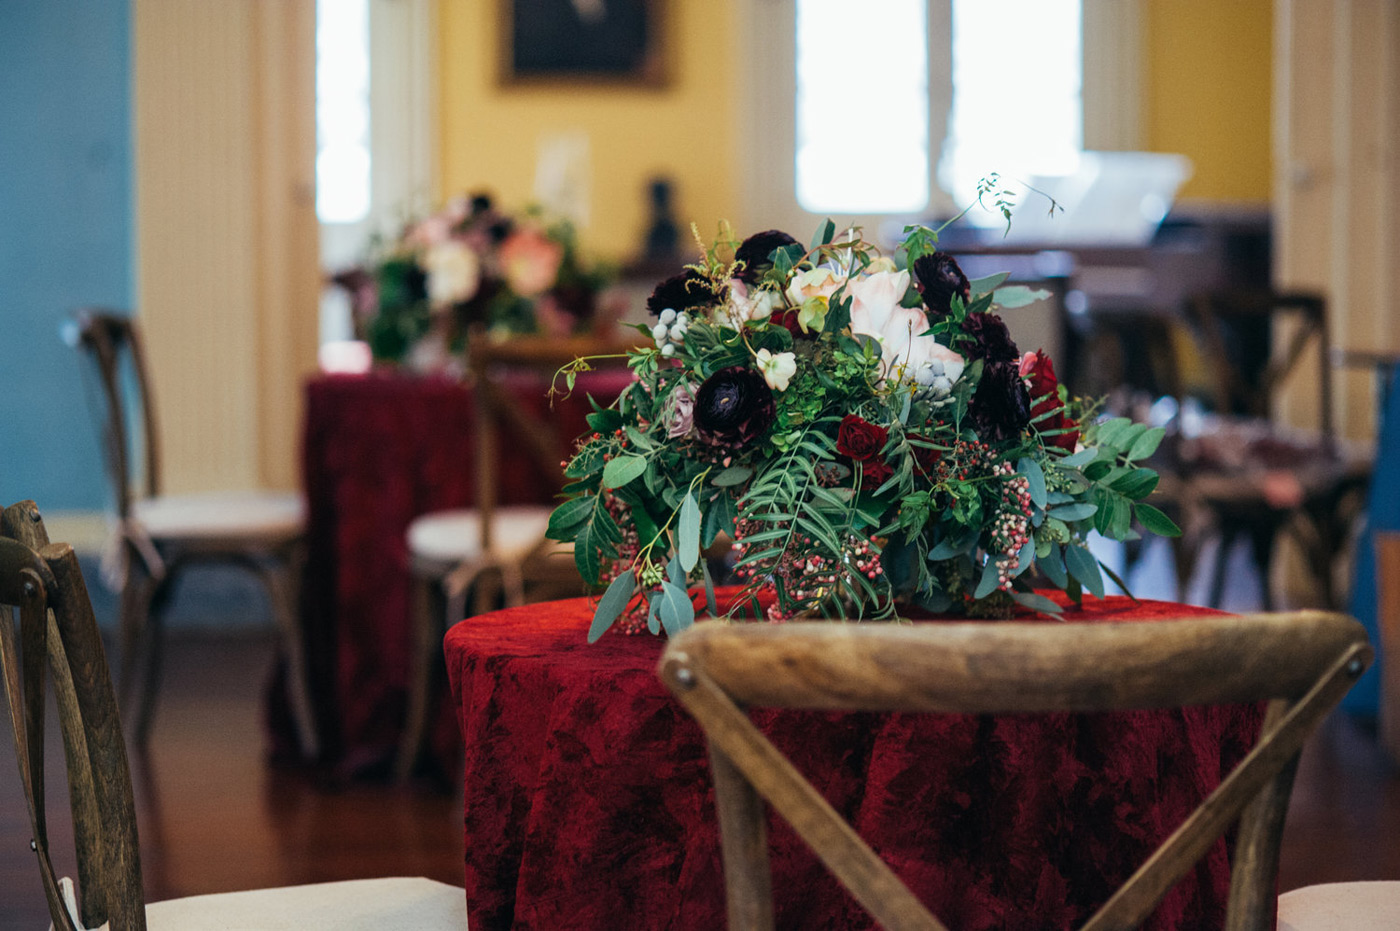 Gorgeous floral arrangement of deep red and white flowers and luscious greenery on top of a dark red velvet table cloth